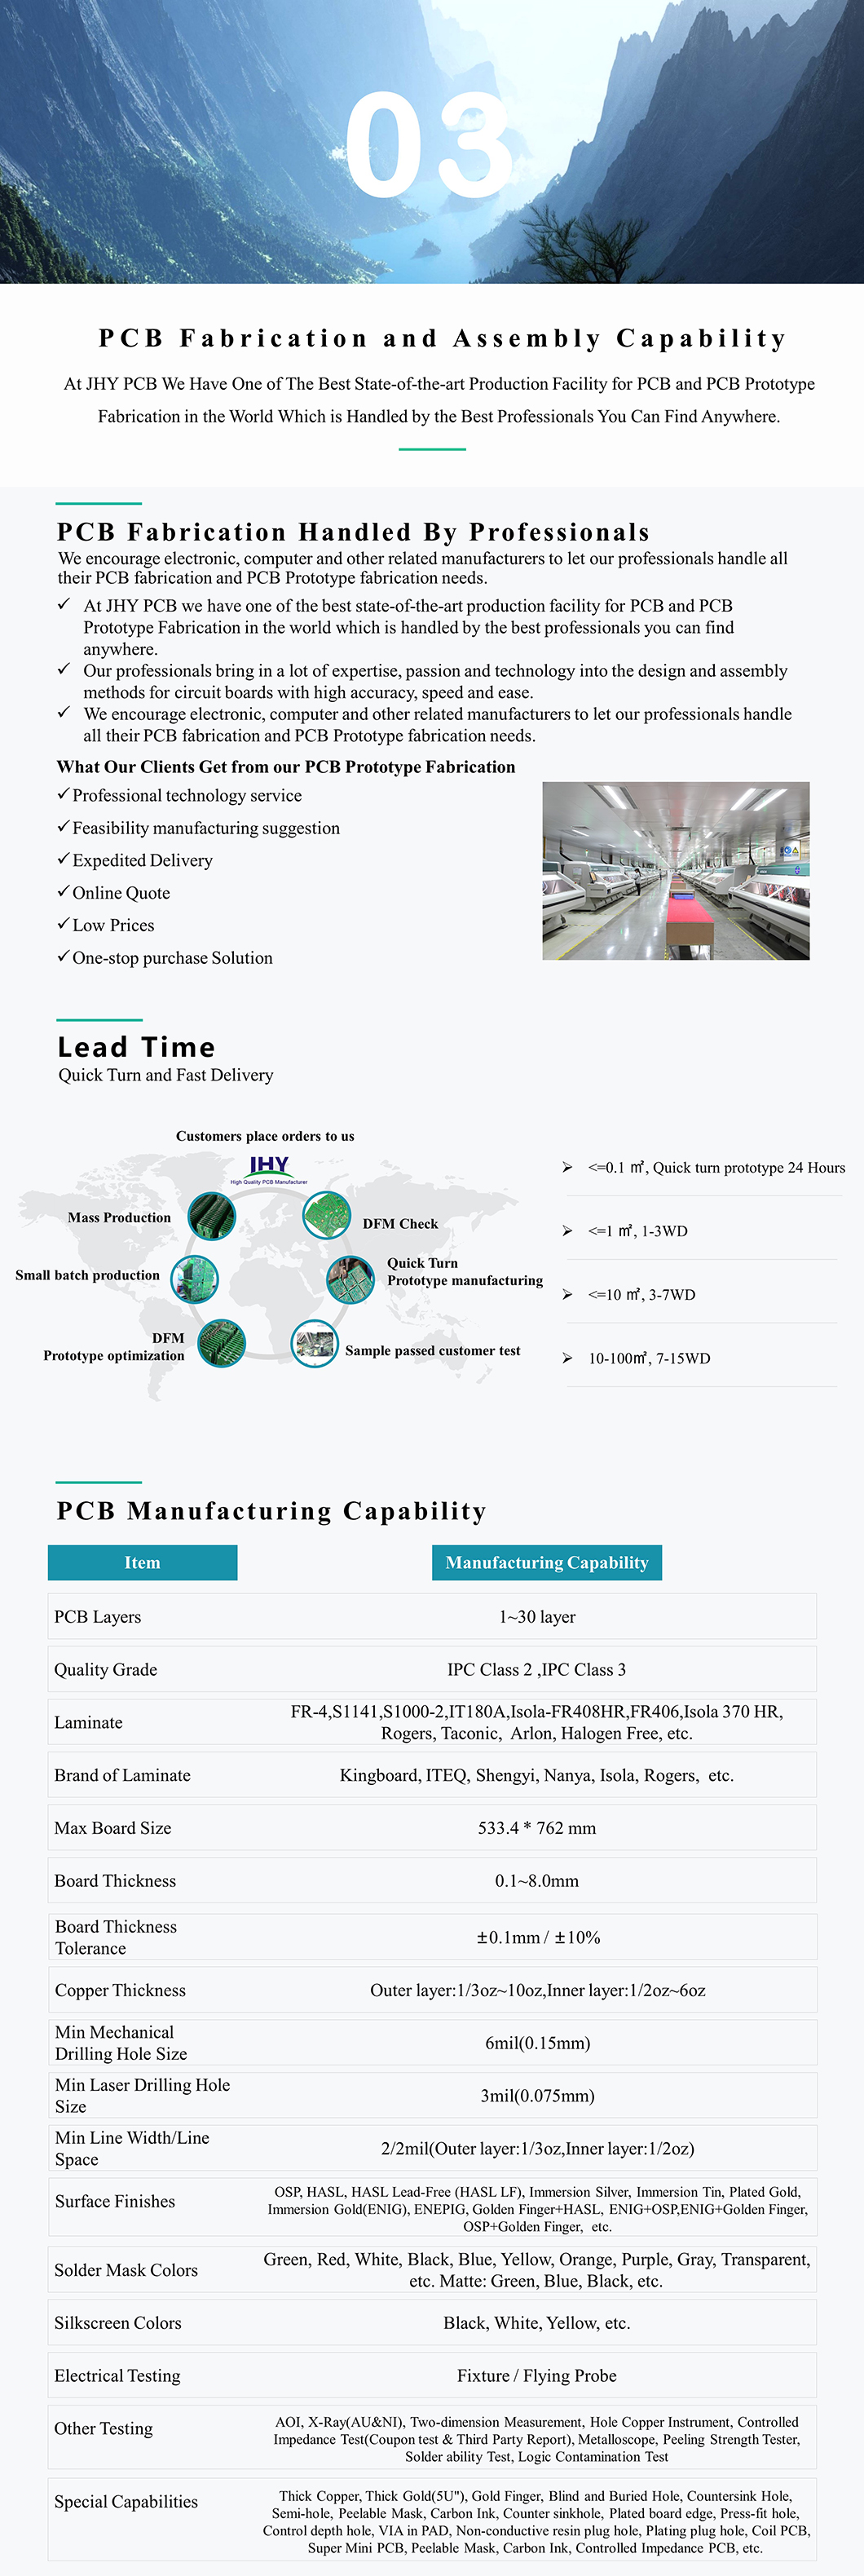 PCB Fabrication and Assembly Capability